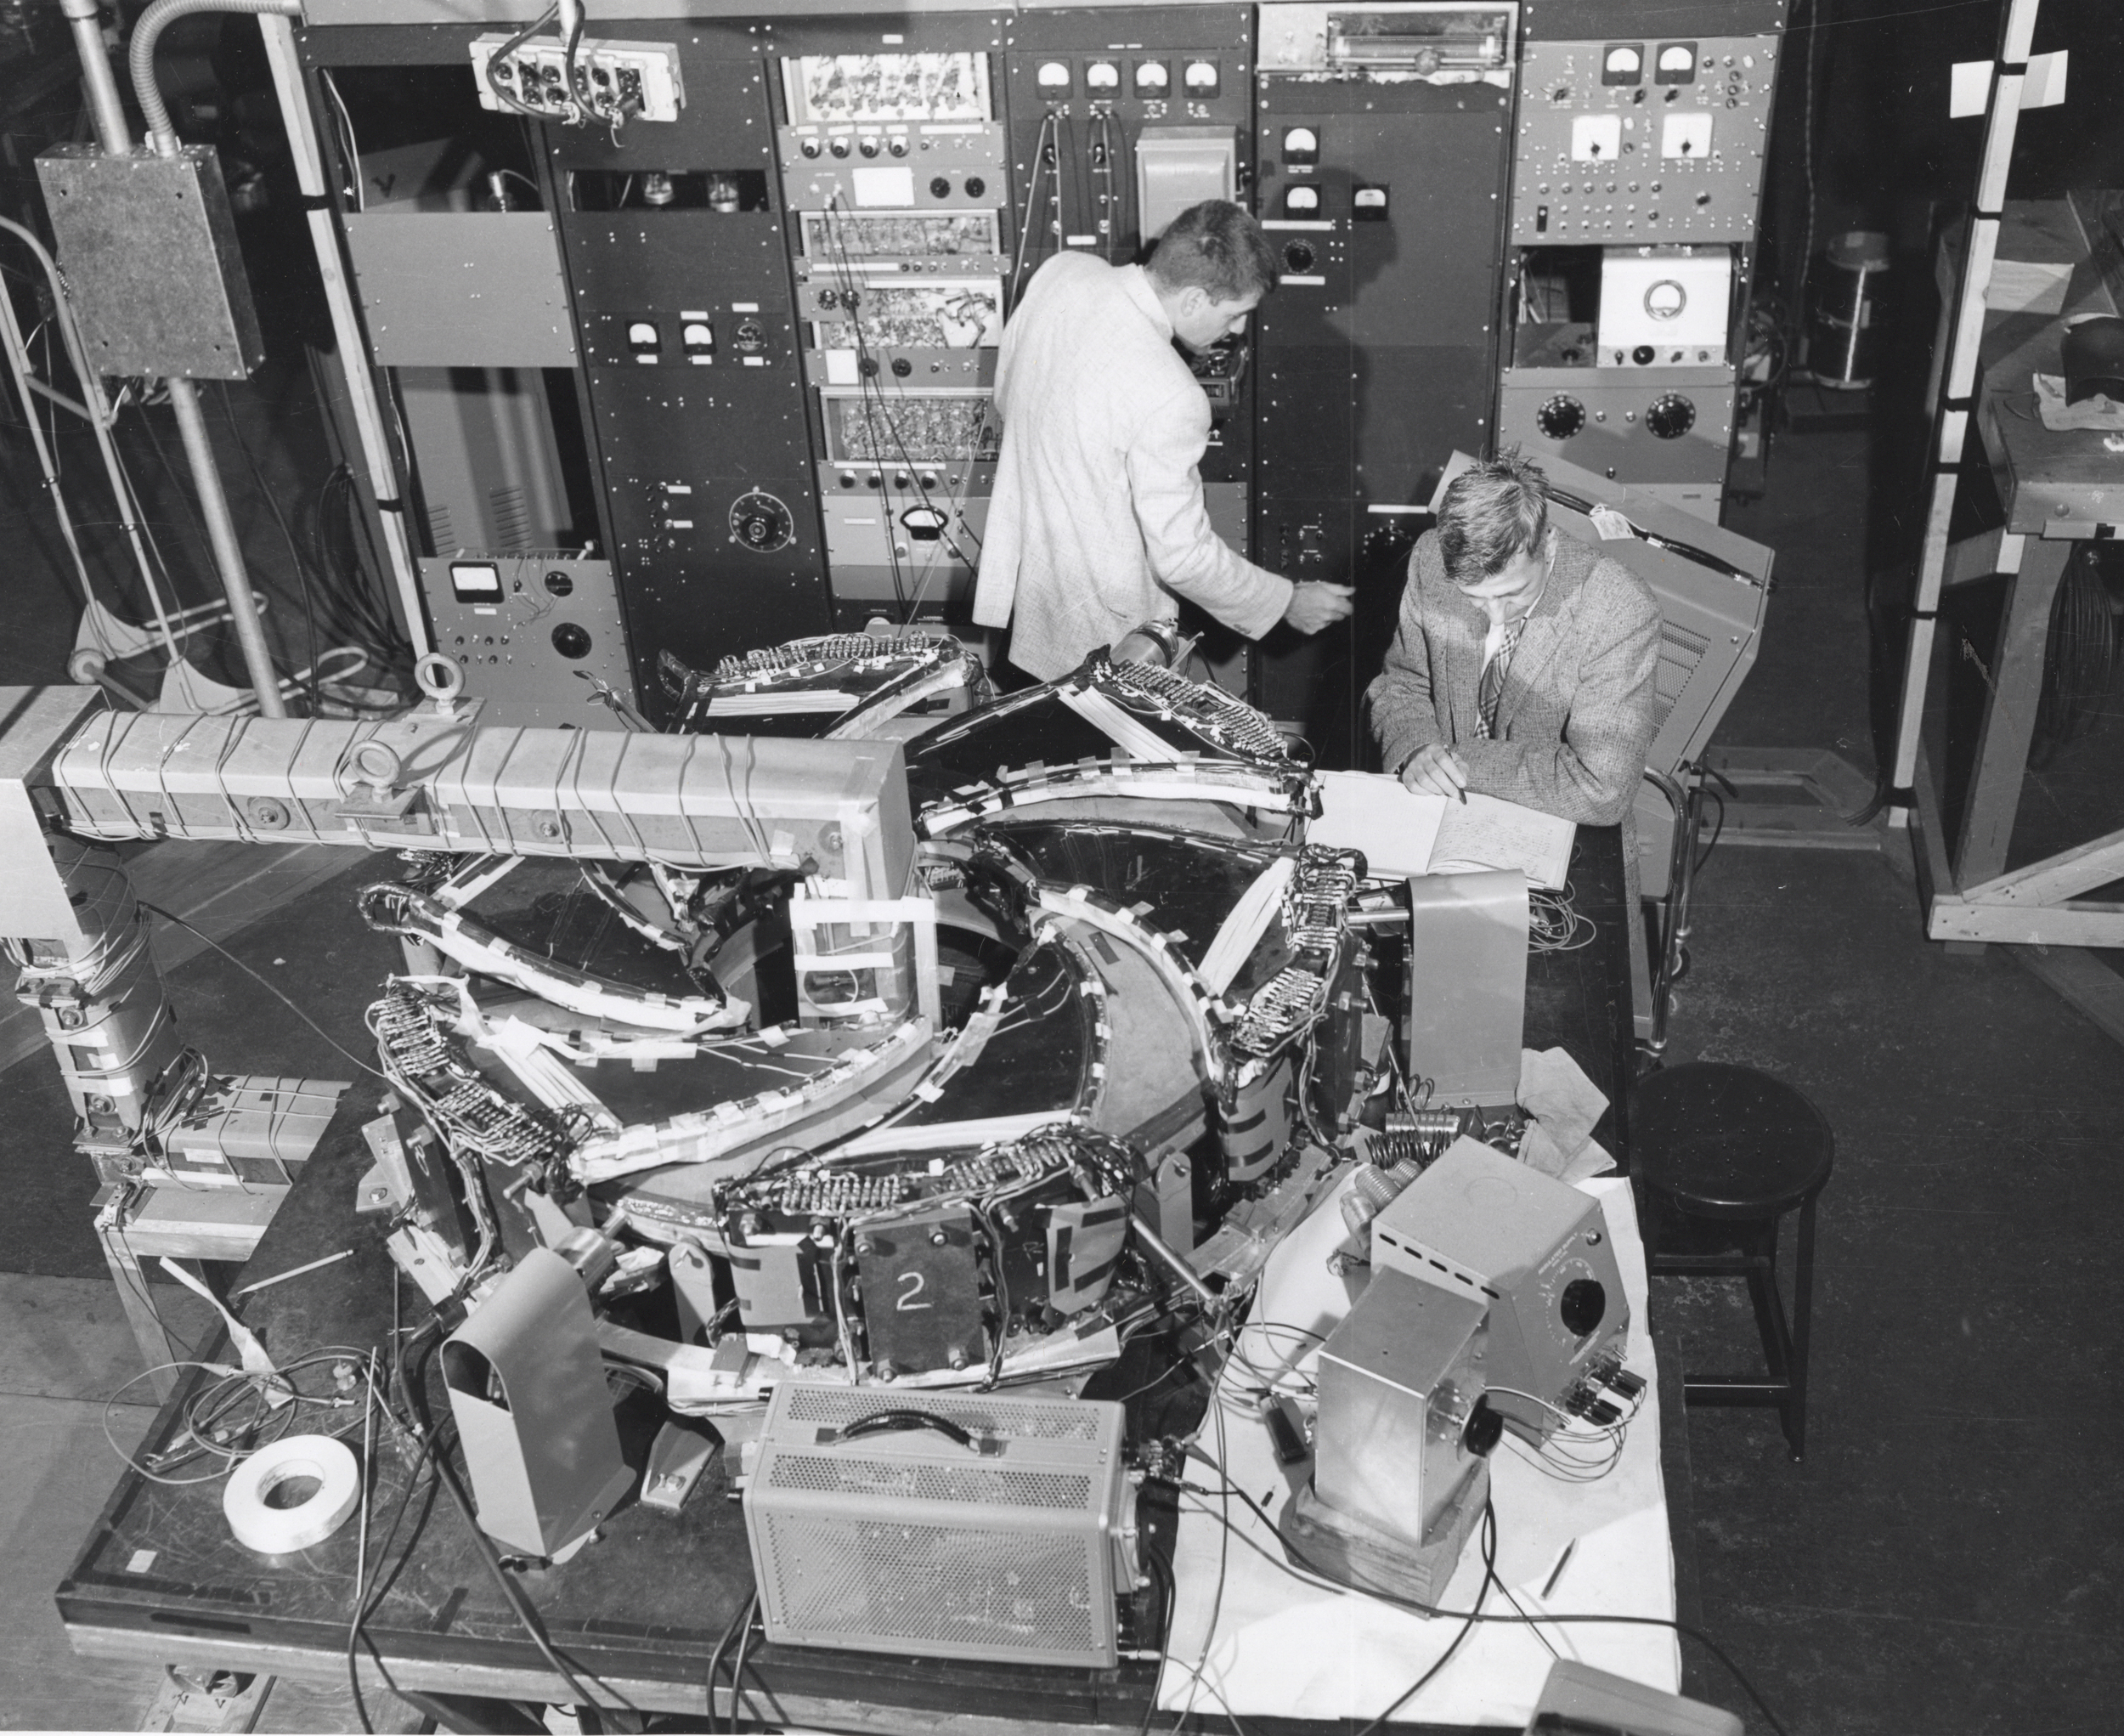 Researchers and equipment on site at Midwestern Universities Research Association (MURA). Photo: University of Wisconsin Madison Archives